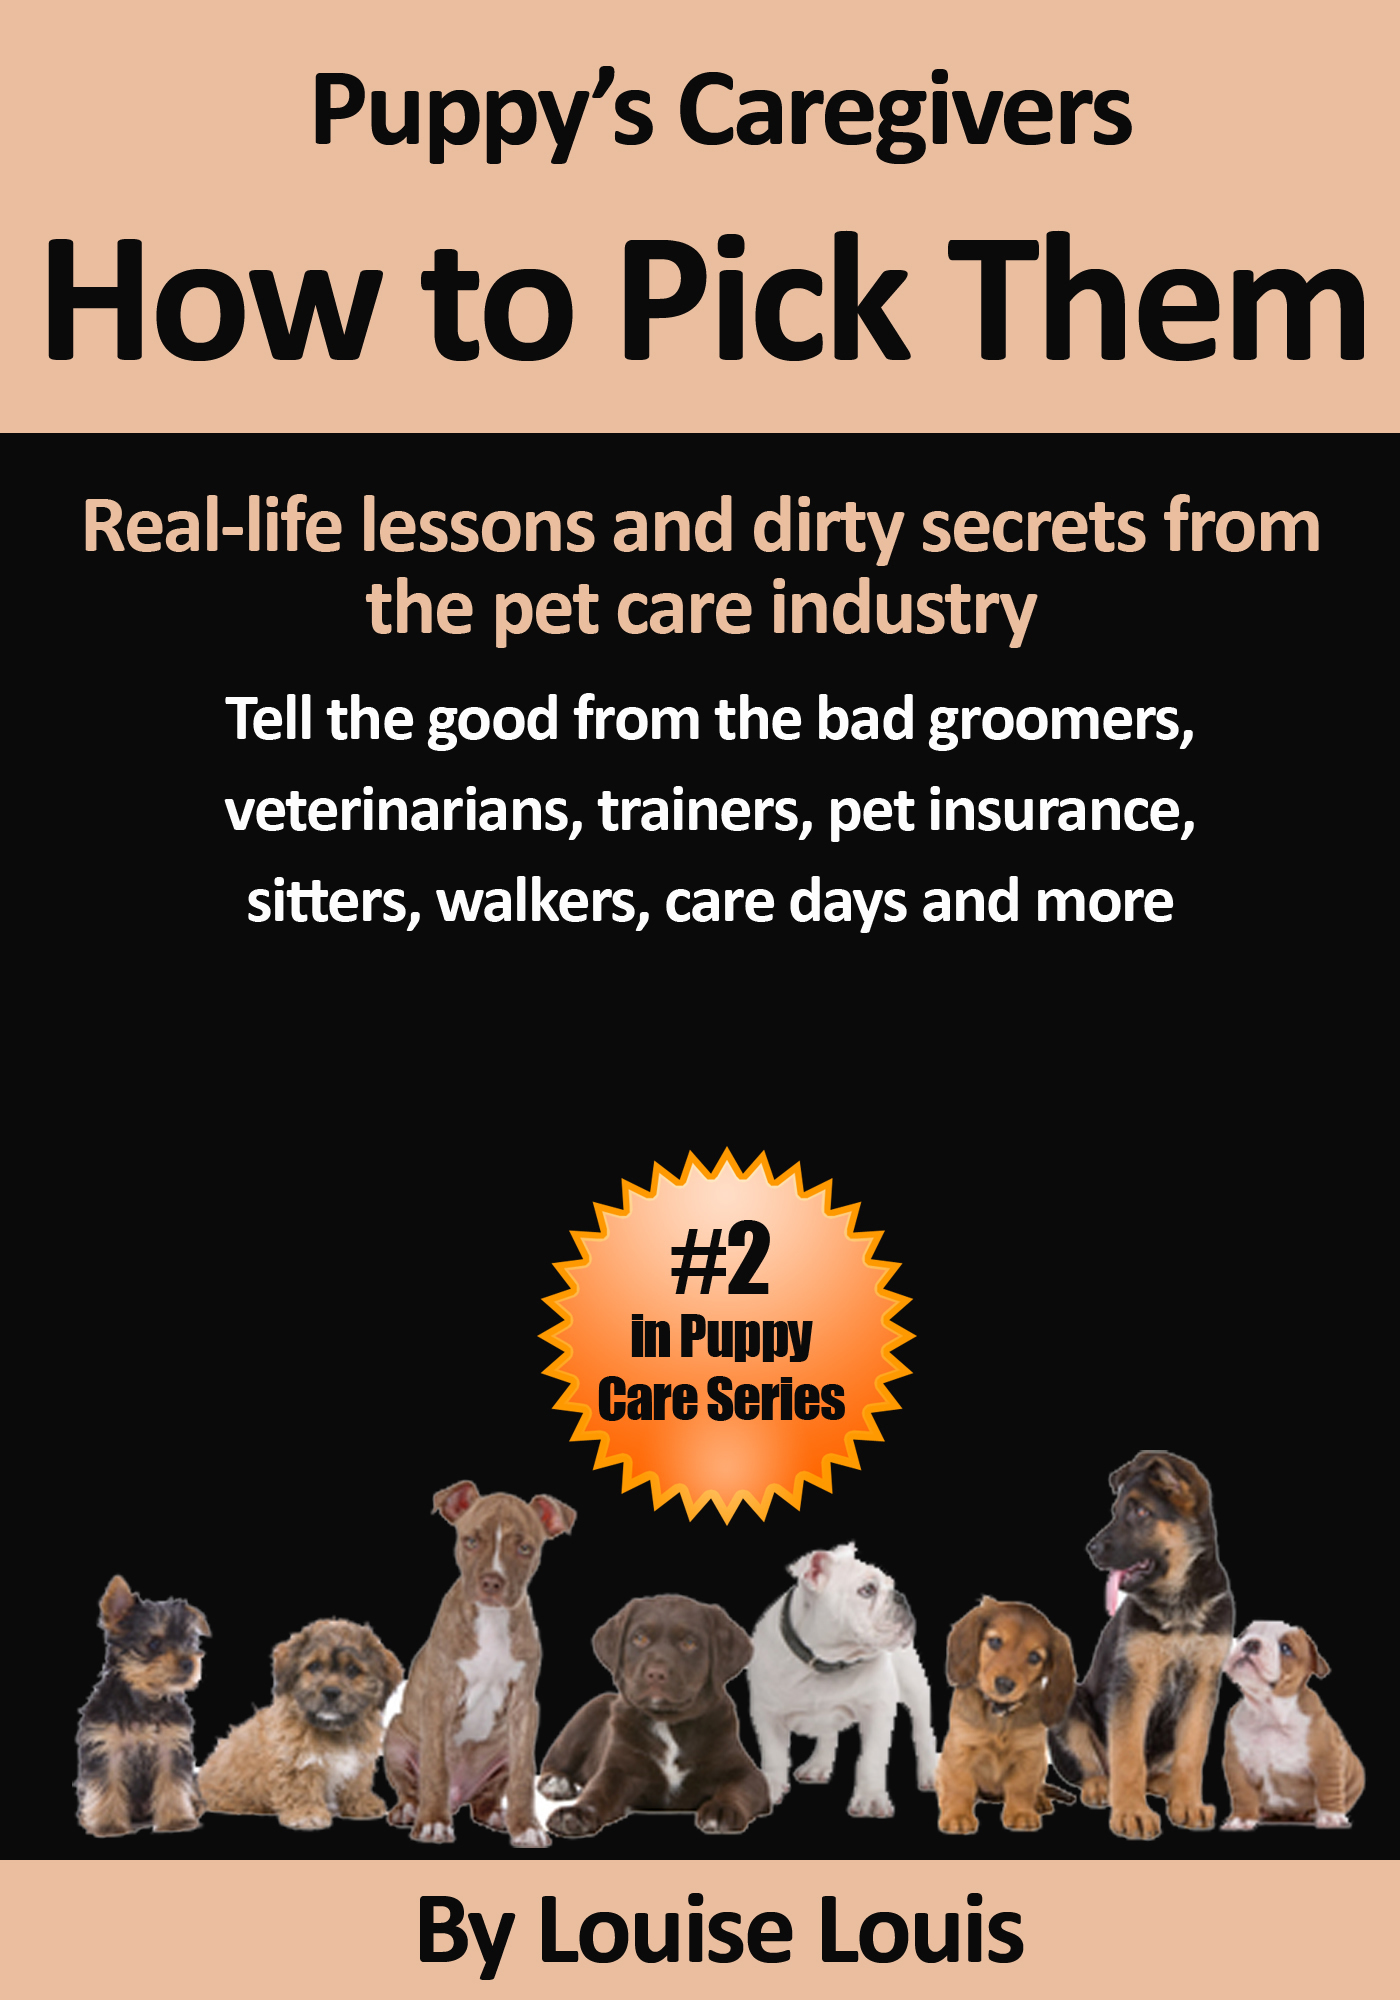 Puppy's Caregivers: How To Pick Them